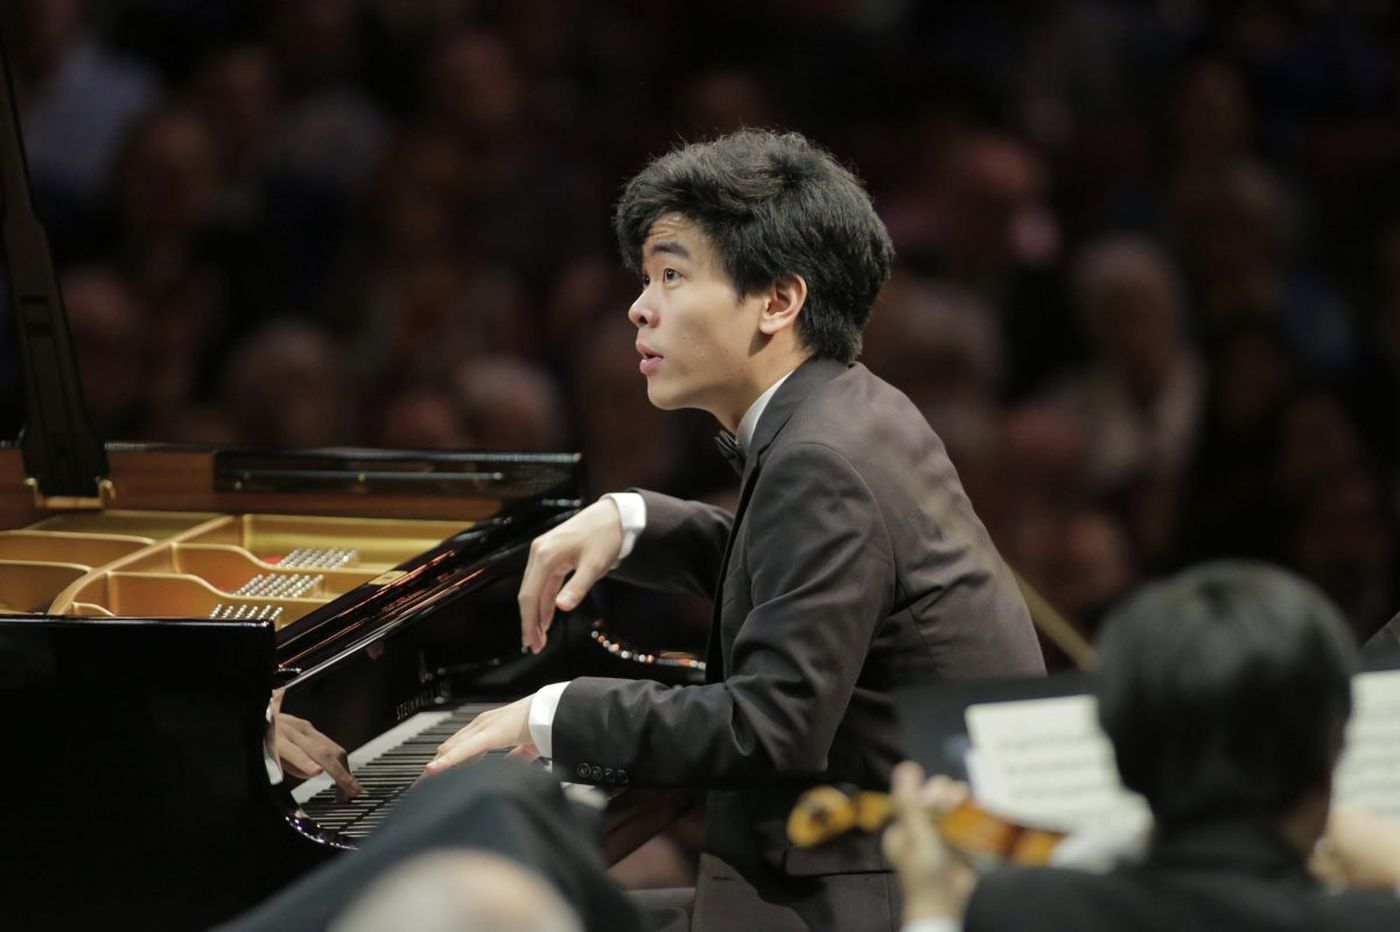 Curtis pianists win big at Van Cliburn competition